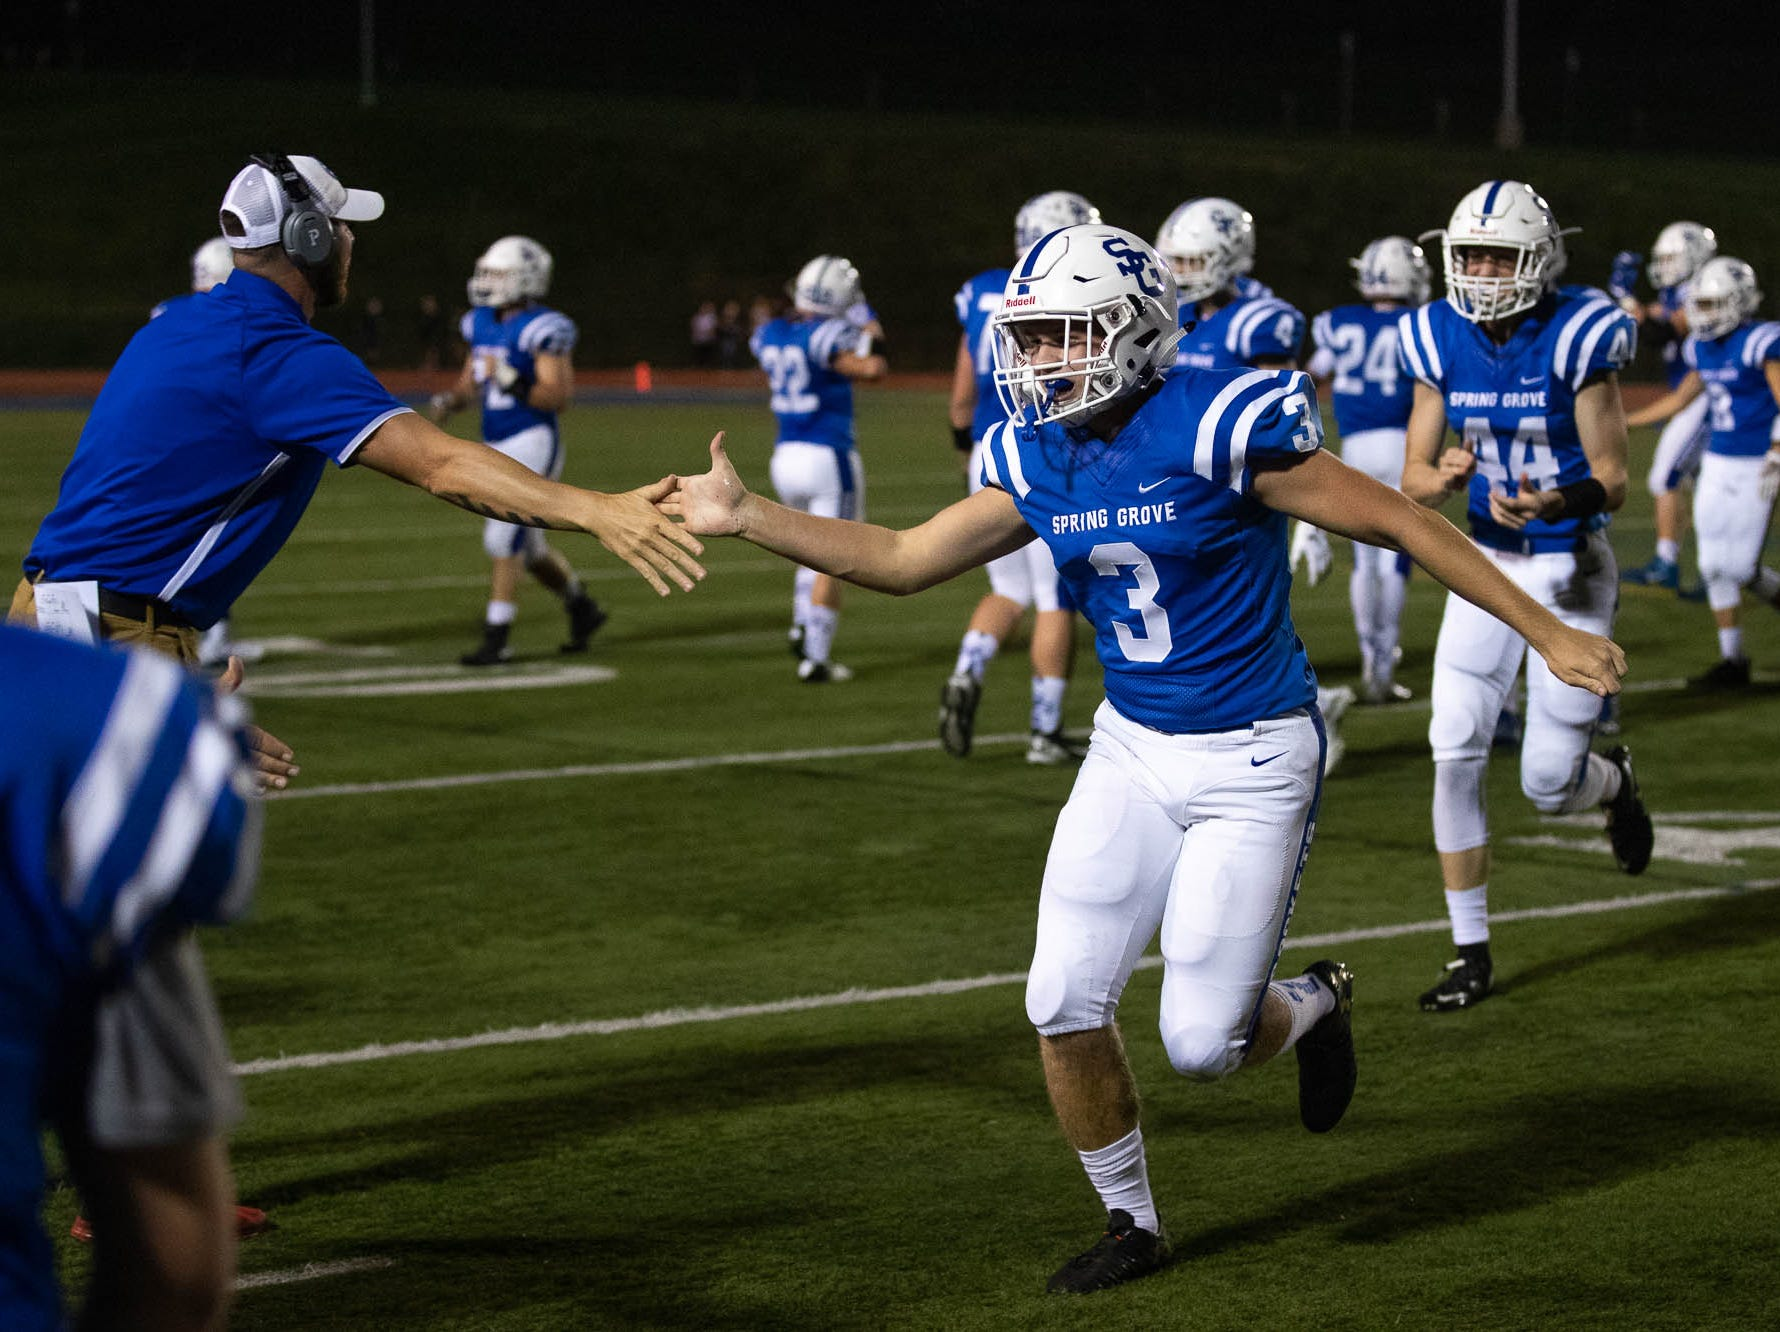 Spring Grove's Daniel Simpson (3) celebrates after Spring Grove retrieved the ball on a fumble during a football game between York High and Spring Grove, Friday, Sept. 21, 2018, in Spring Grove.